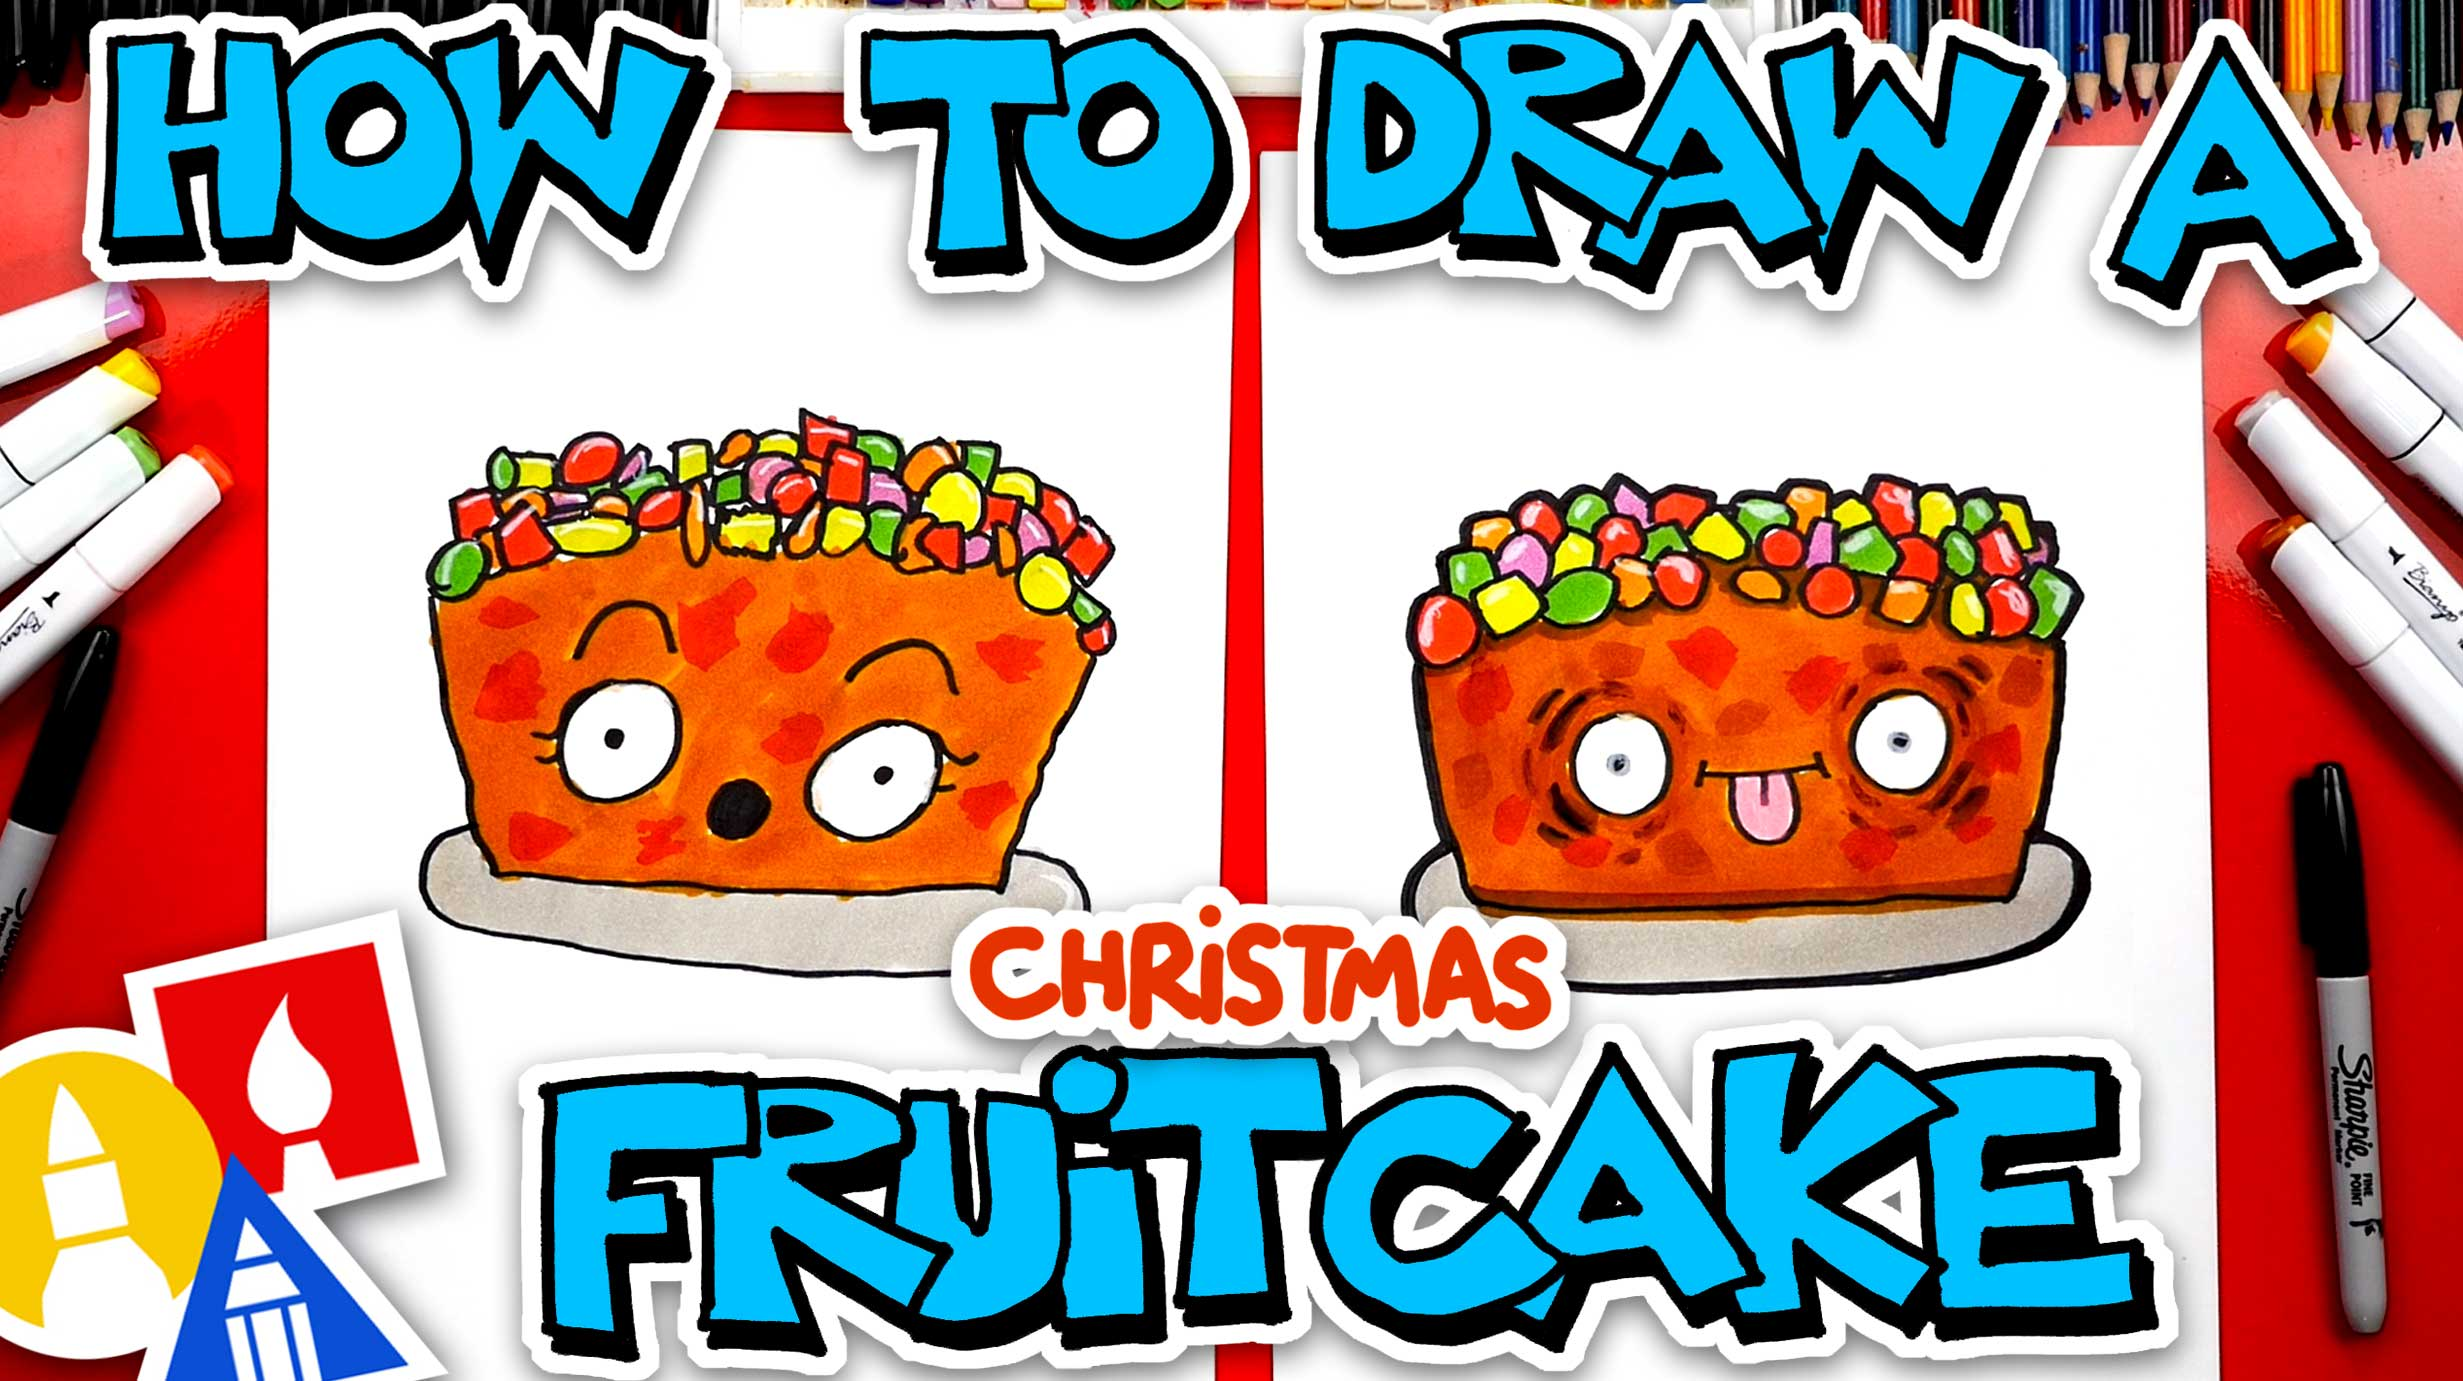 How To Draw A Funny Fruit Cake - Art For Kids Hub